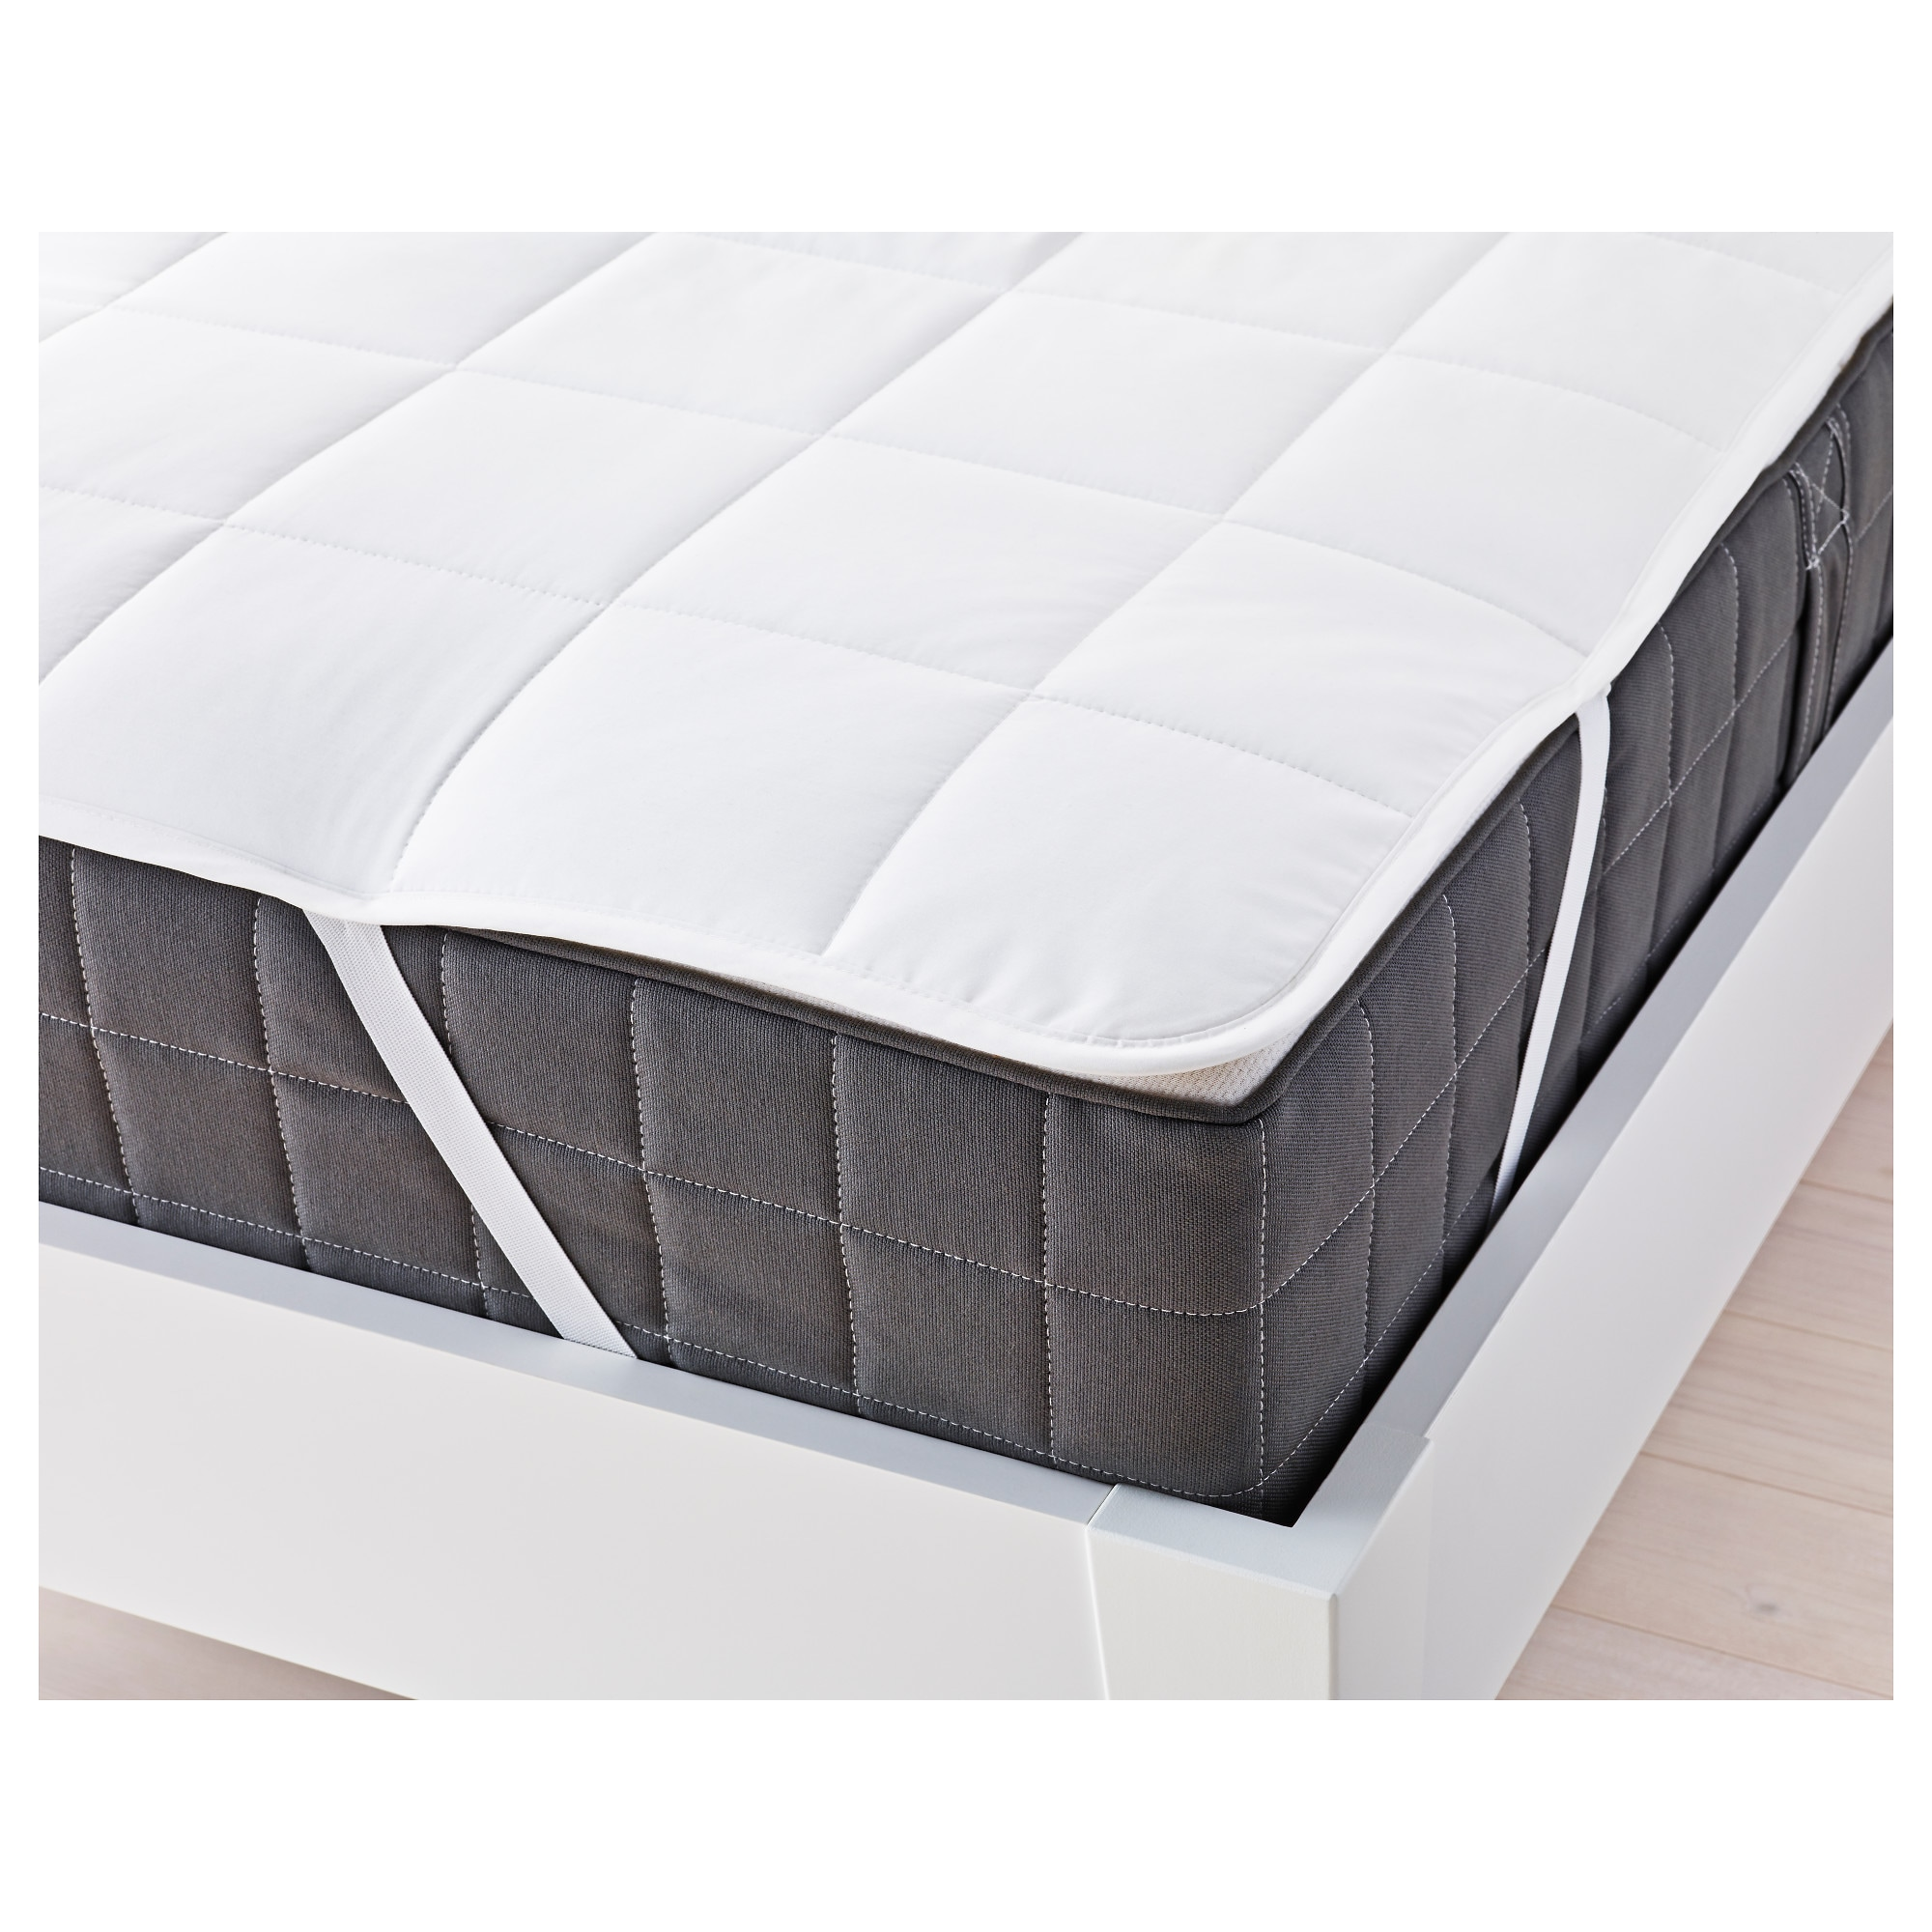 """KUNGSMYNTA mattress protector Thread count: 236 /inch² Length: 80 """" Width:  60"""